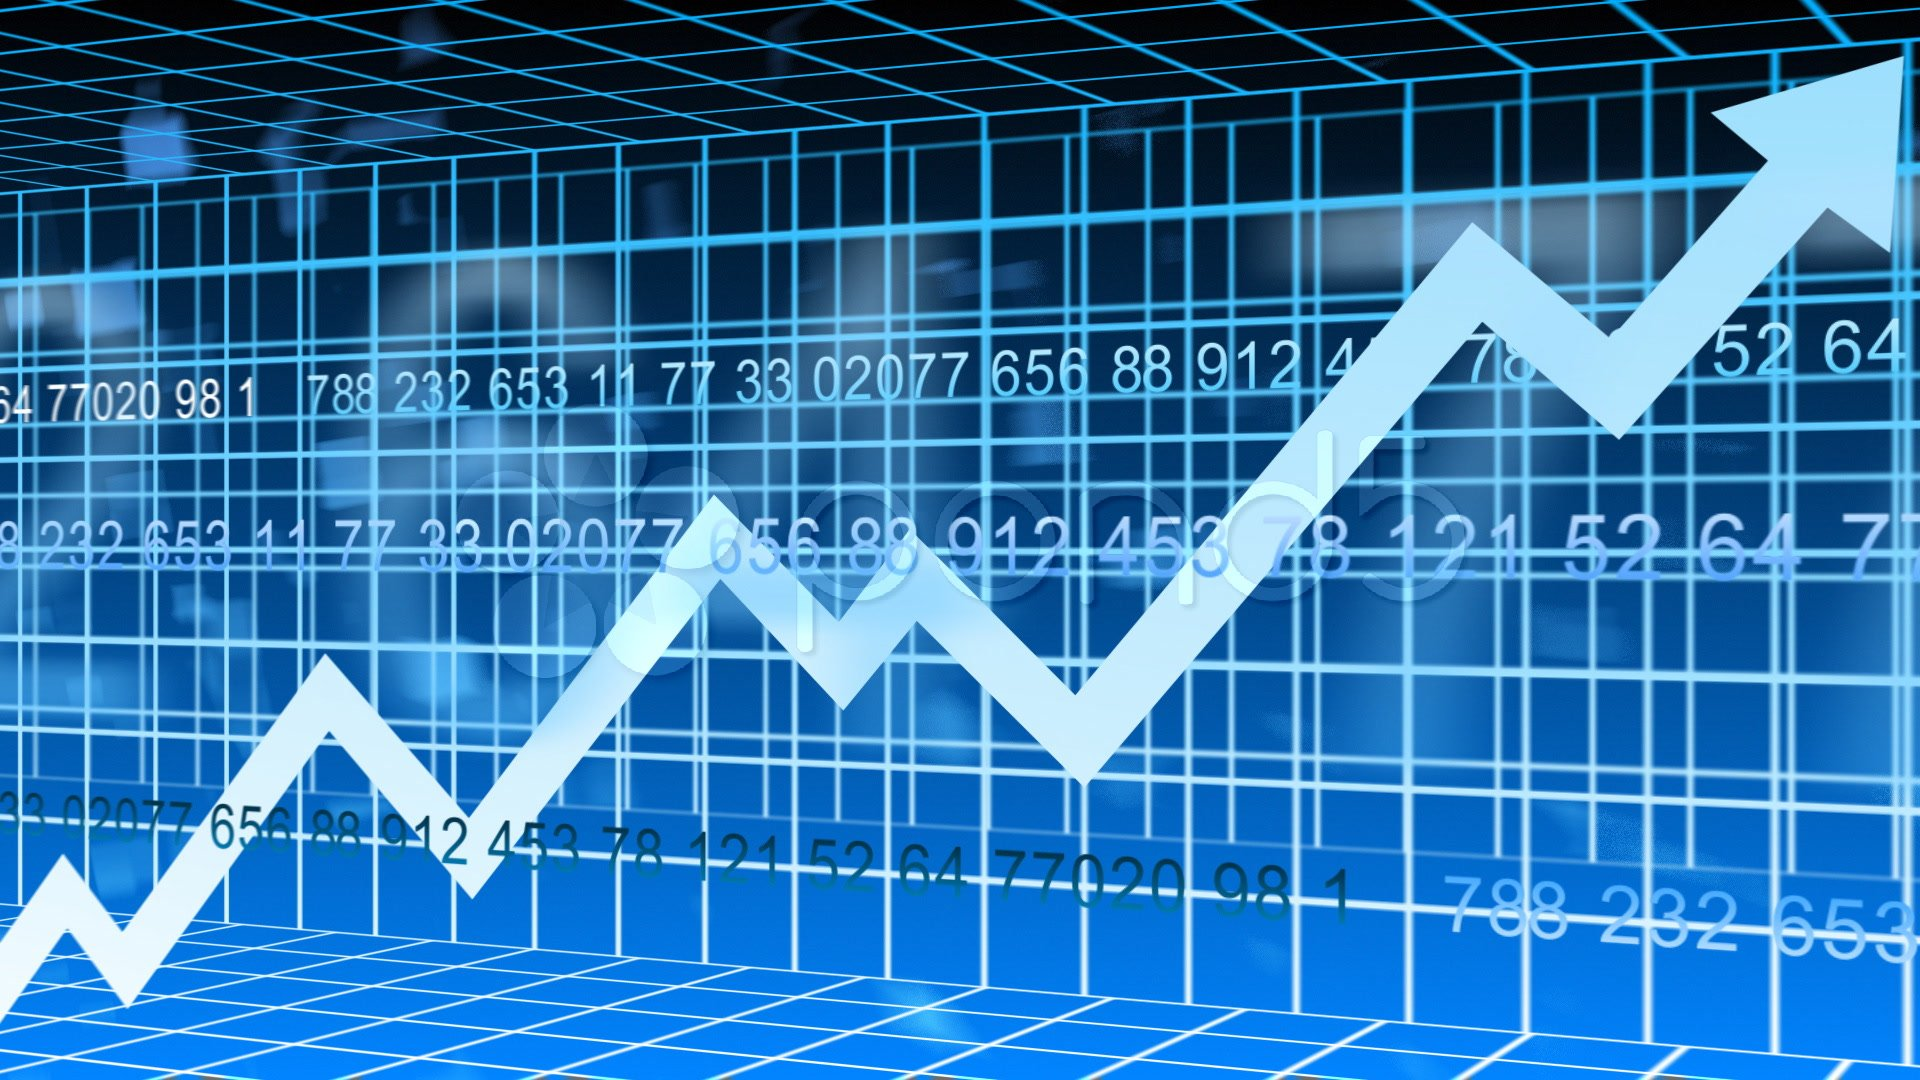 stock market crashes Hd Wallpapers 1920x1080